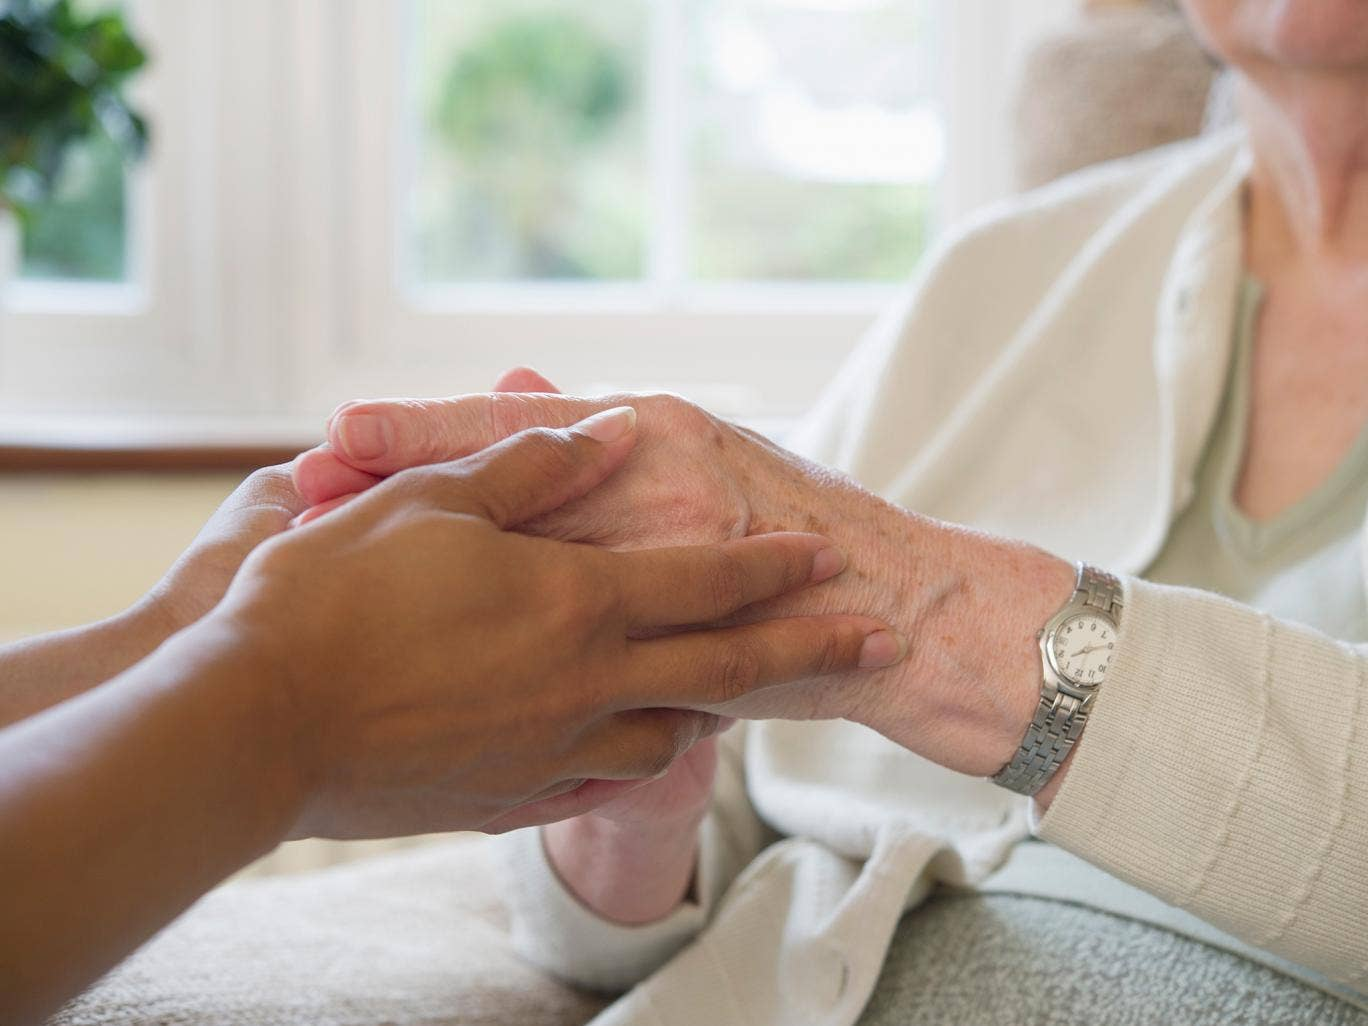 Care homes will face a 'tough' new inspection regime